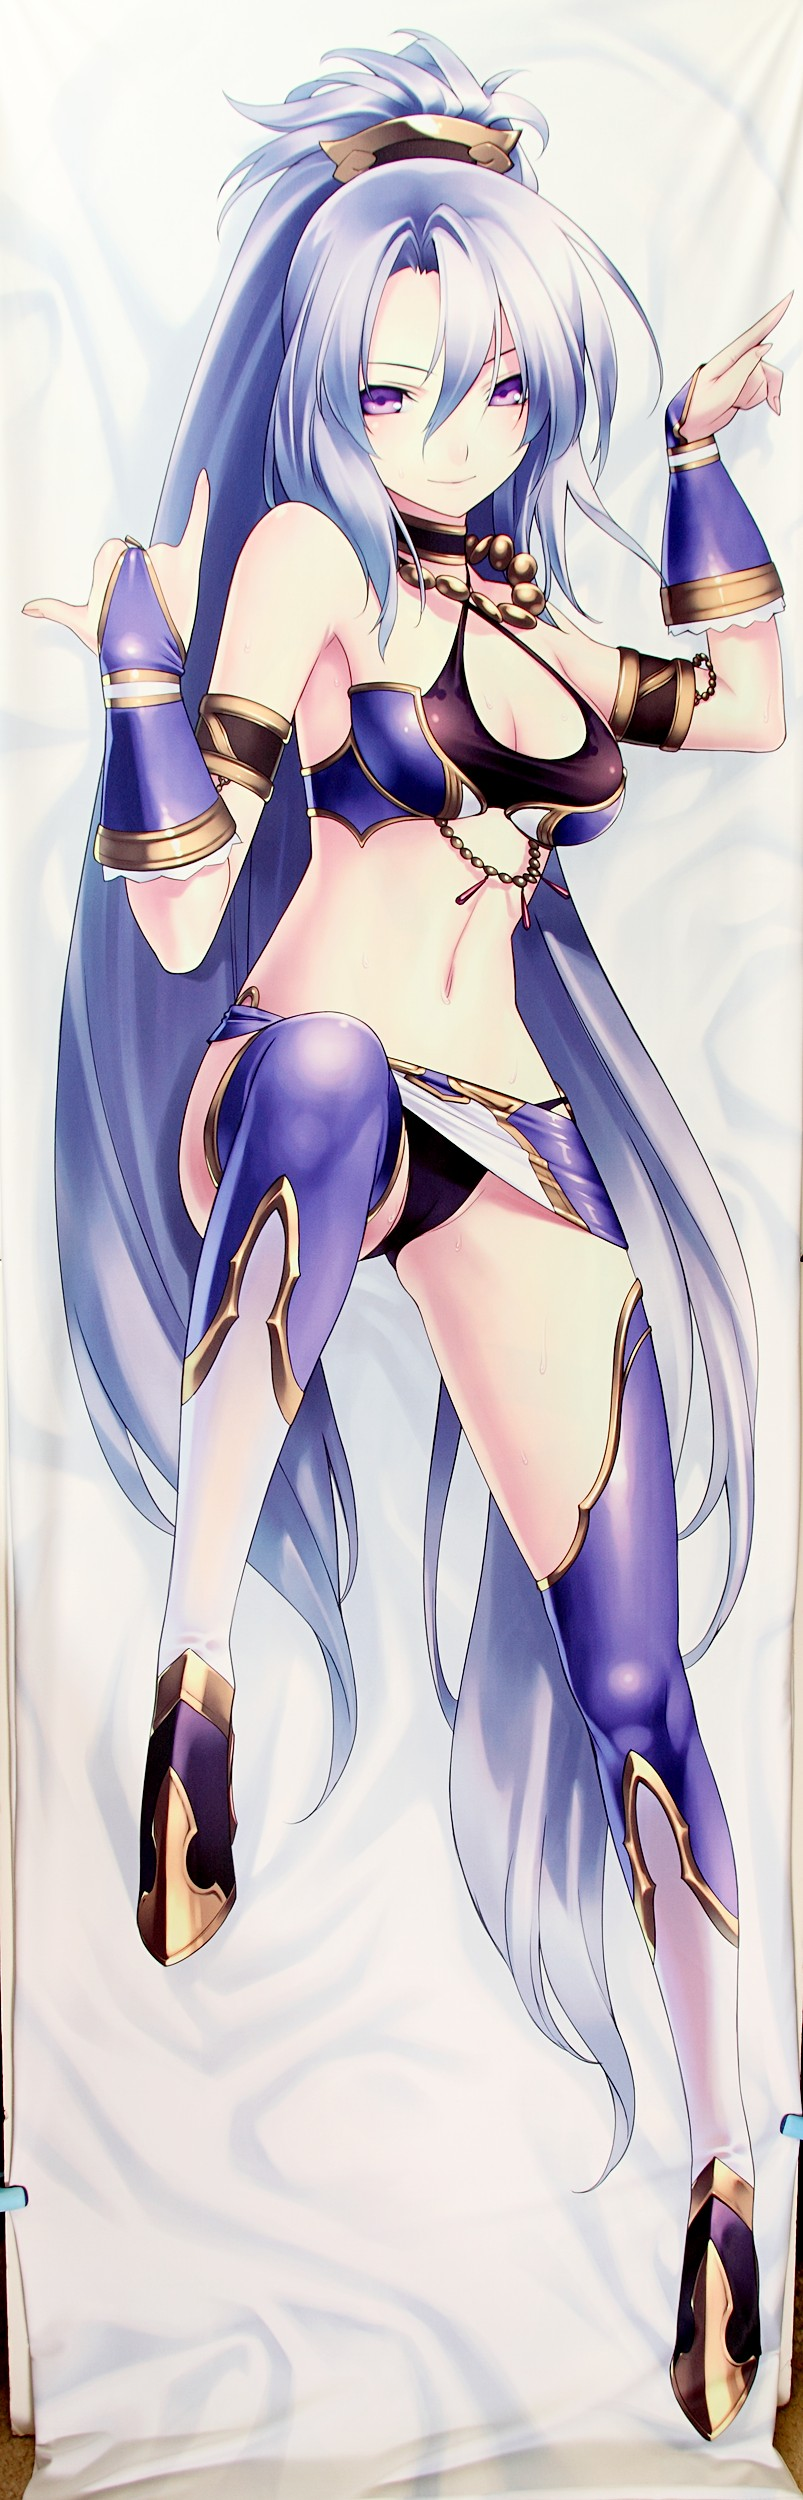 eva 02 The Agarest War games have a saucy reputation though I am told that the ...